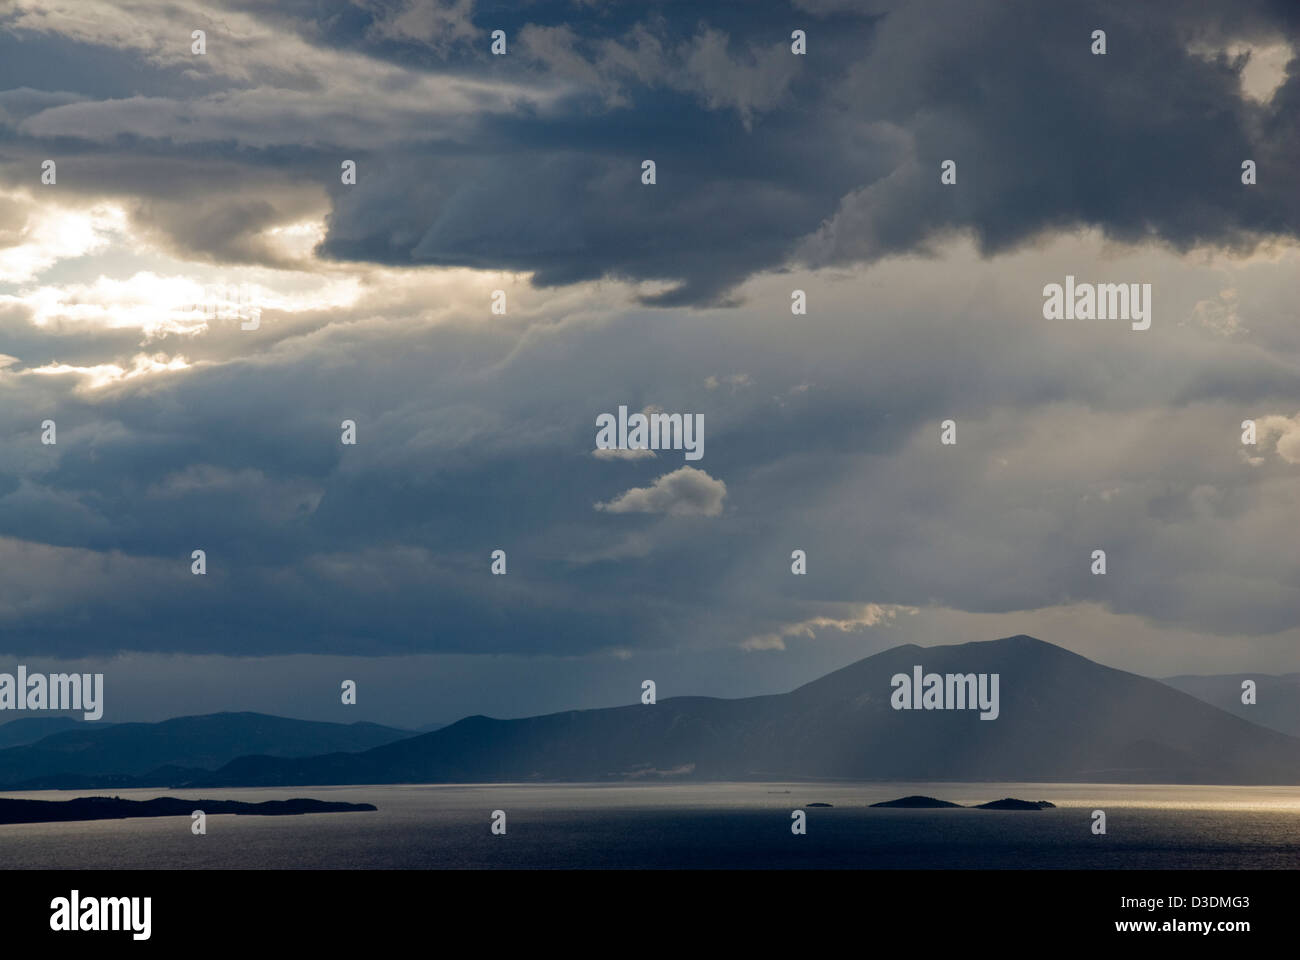 Dramatic sky above sea and mountains - Stock Image